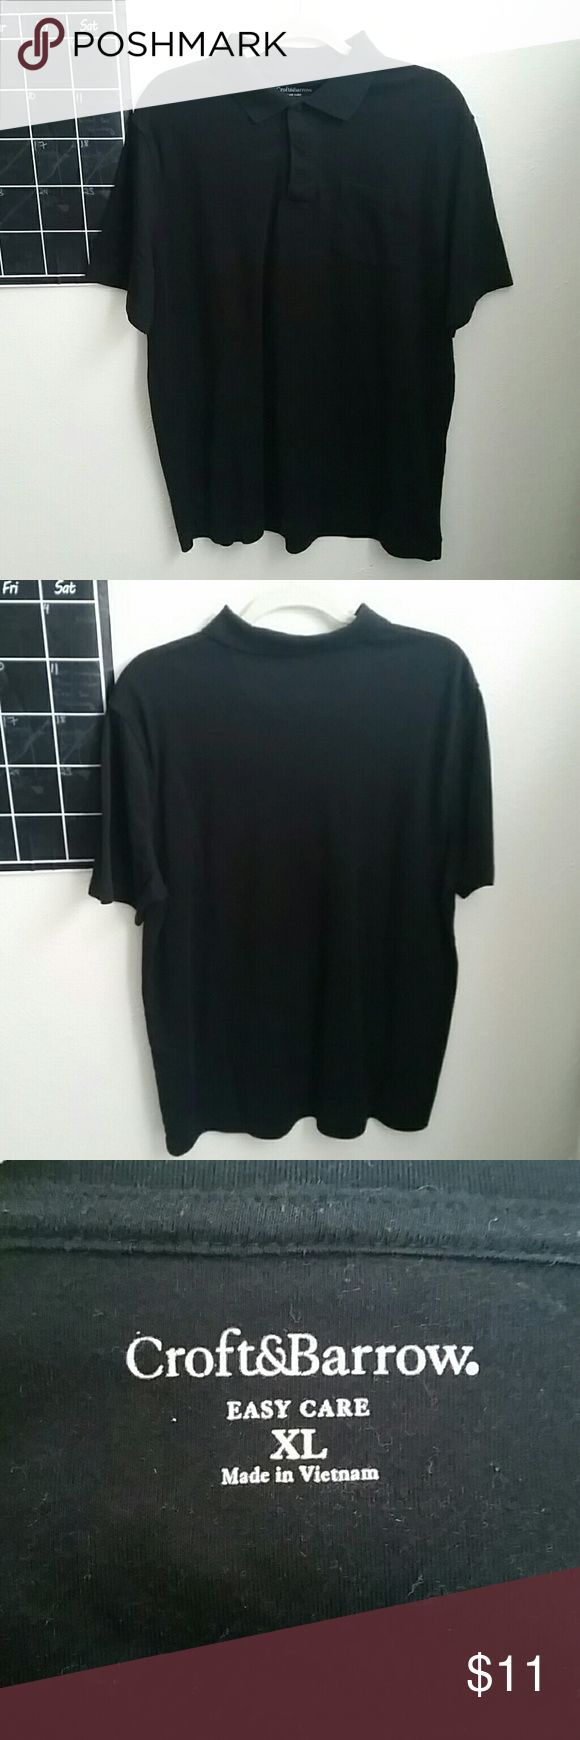 Casual black polo shirt In very good condition. Only worn once. Soft material. Has a left side pocket. Great ss a professional look or for school uniform! croft & barrow Shirts Polos